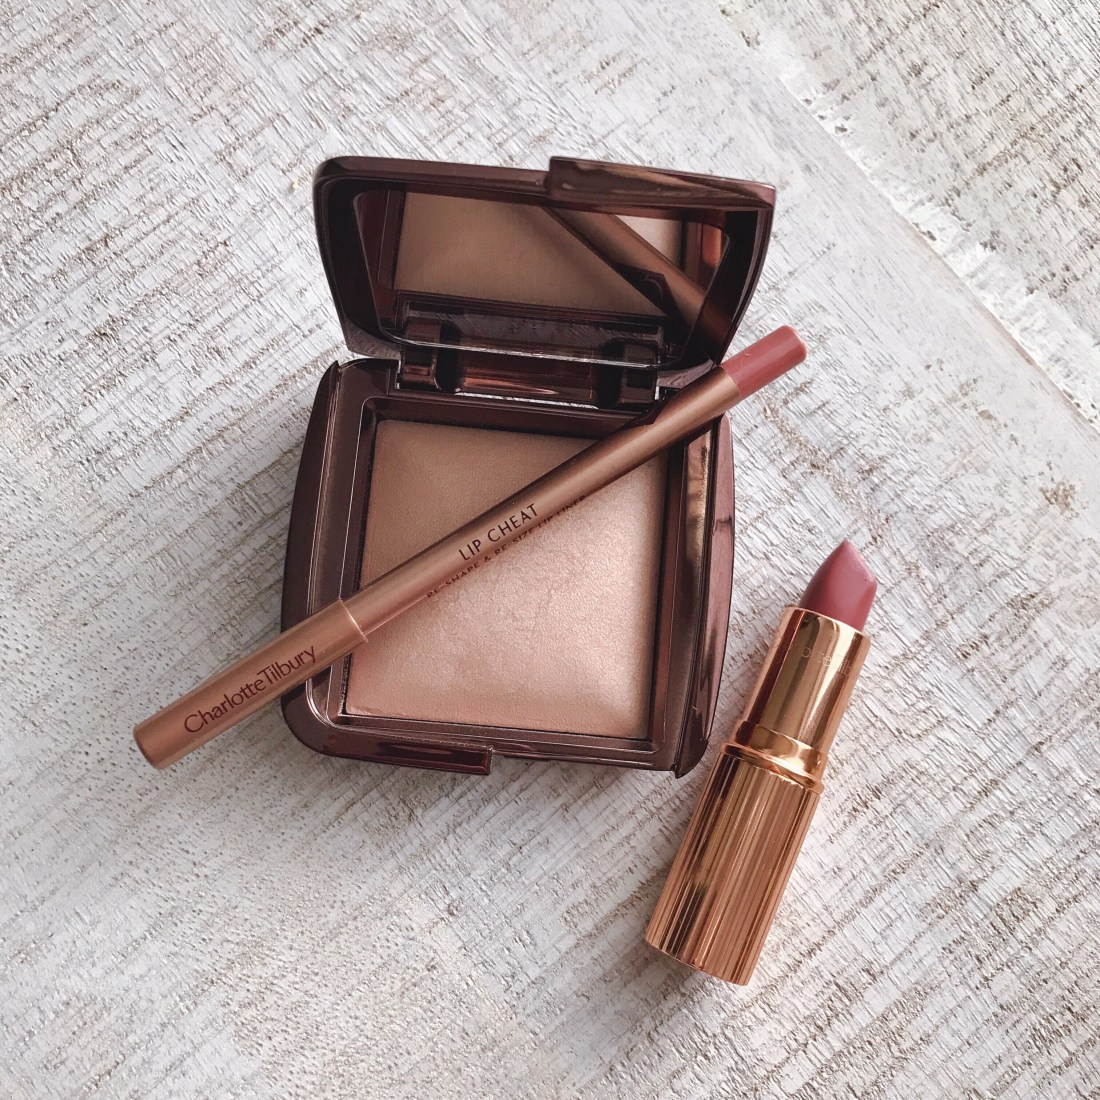 Hourglass Ambient Lighting Powder Dim Light Review, Charlotte Tilbury Pillow Talk Lip Cheat and Lipstick